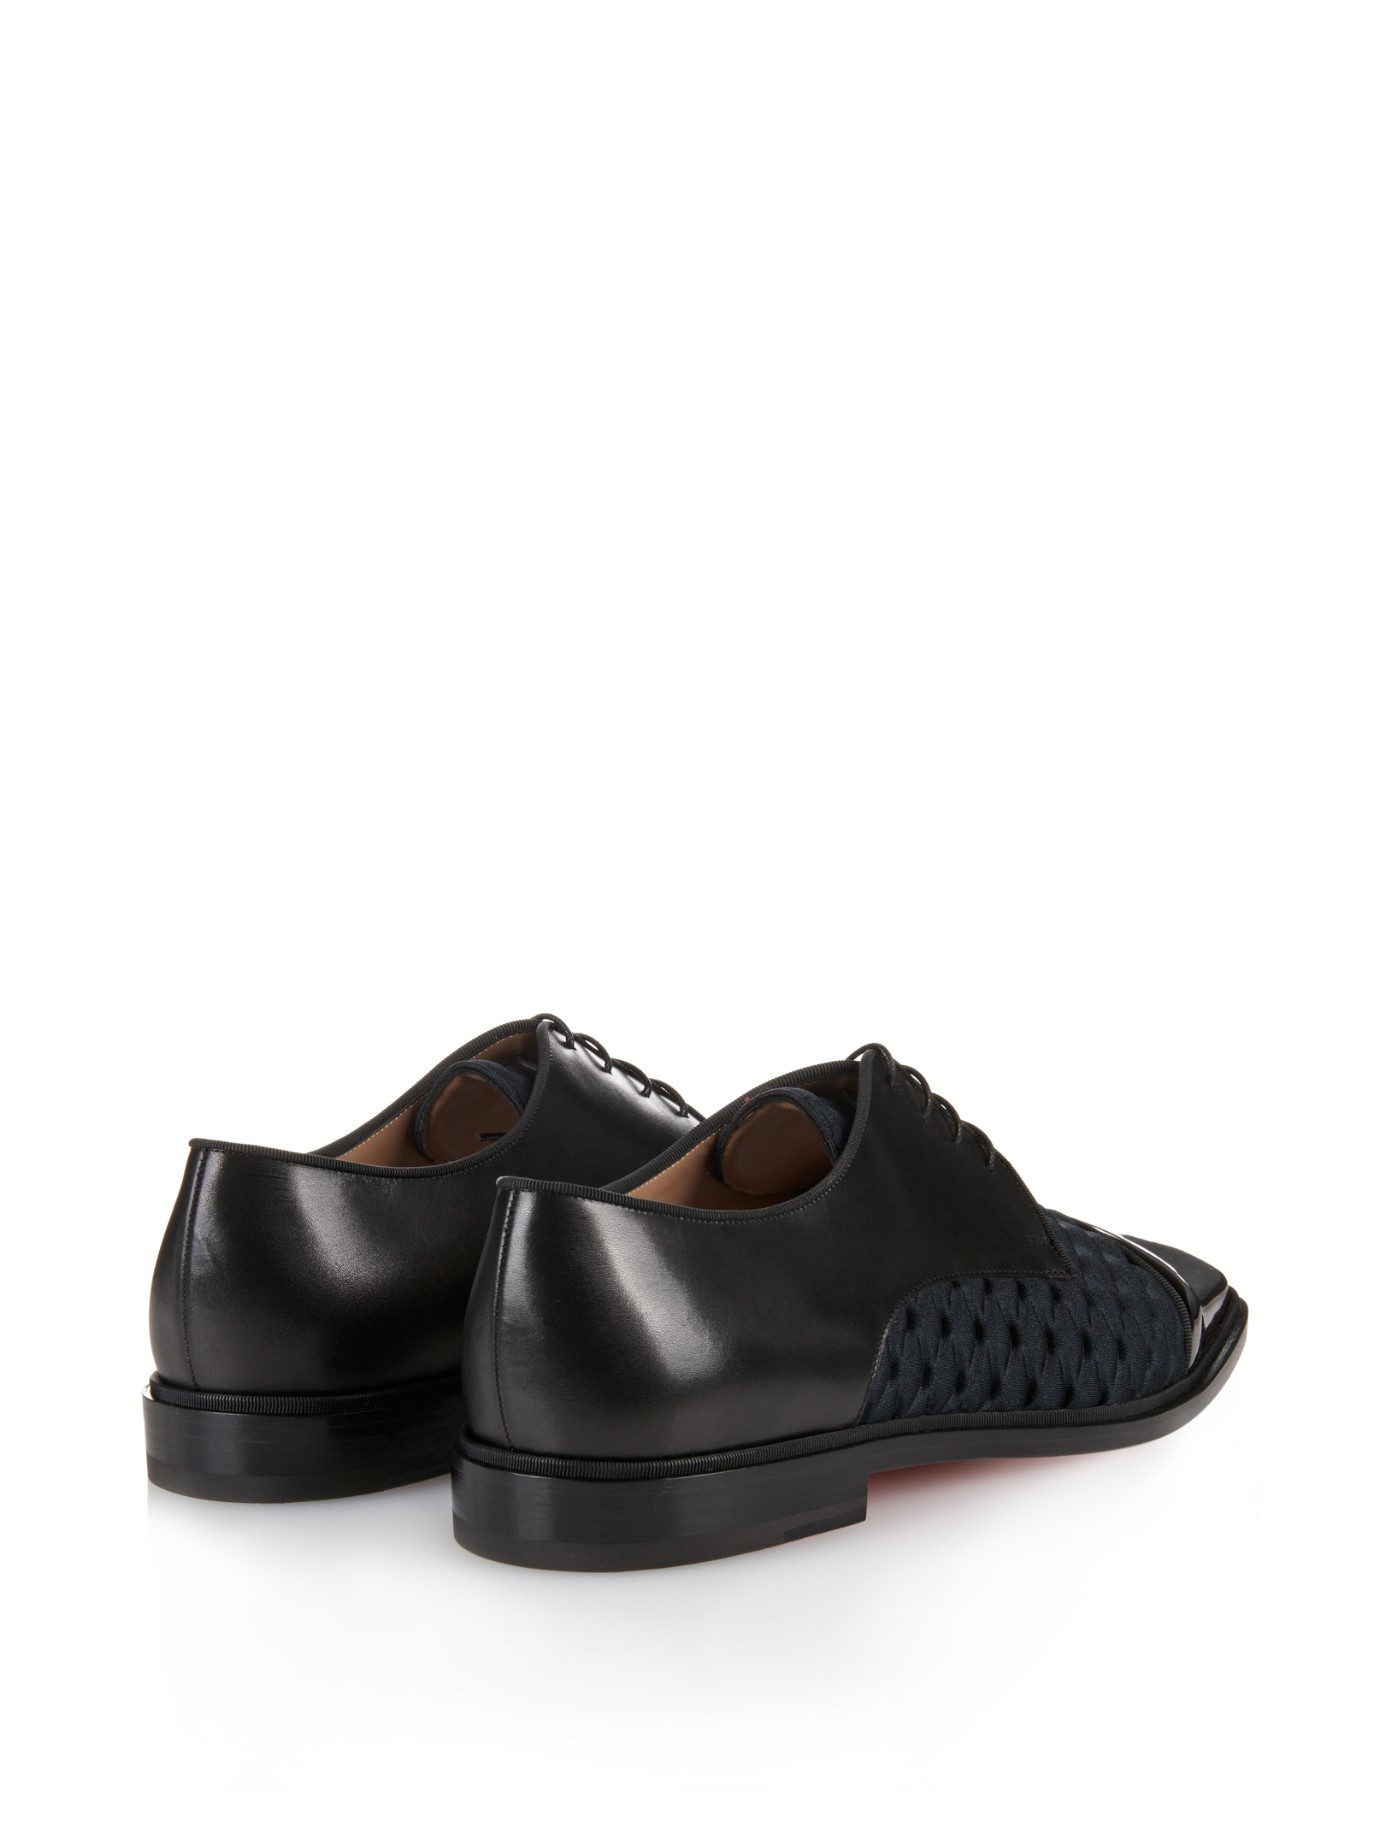 CHRISTIAN LOUBOUTIN Derbis Popular